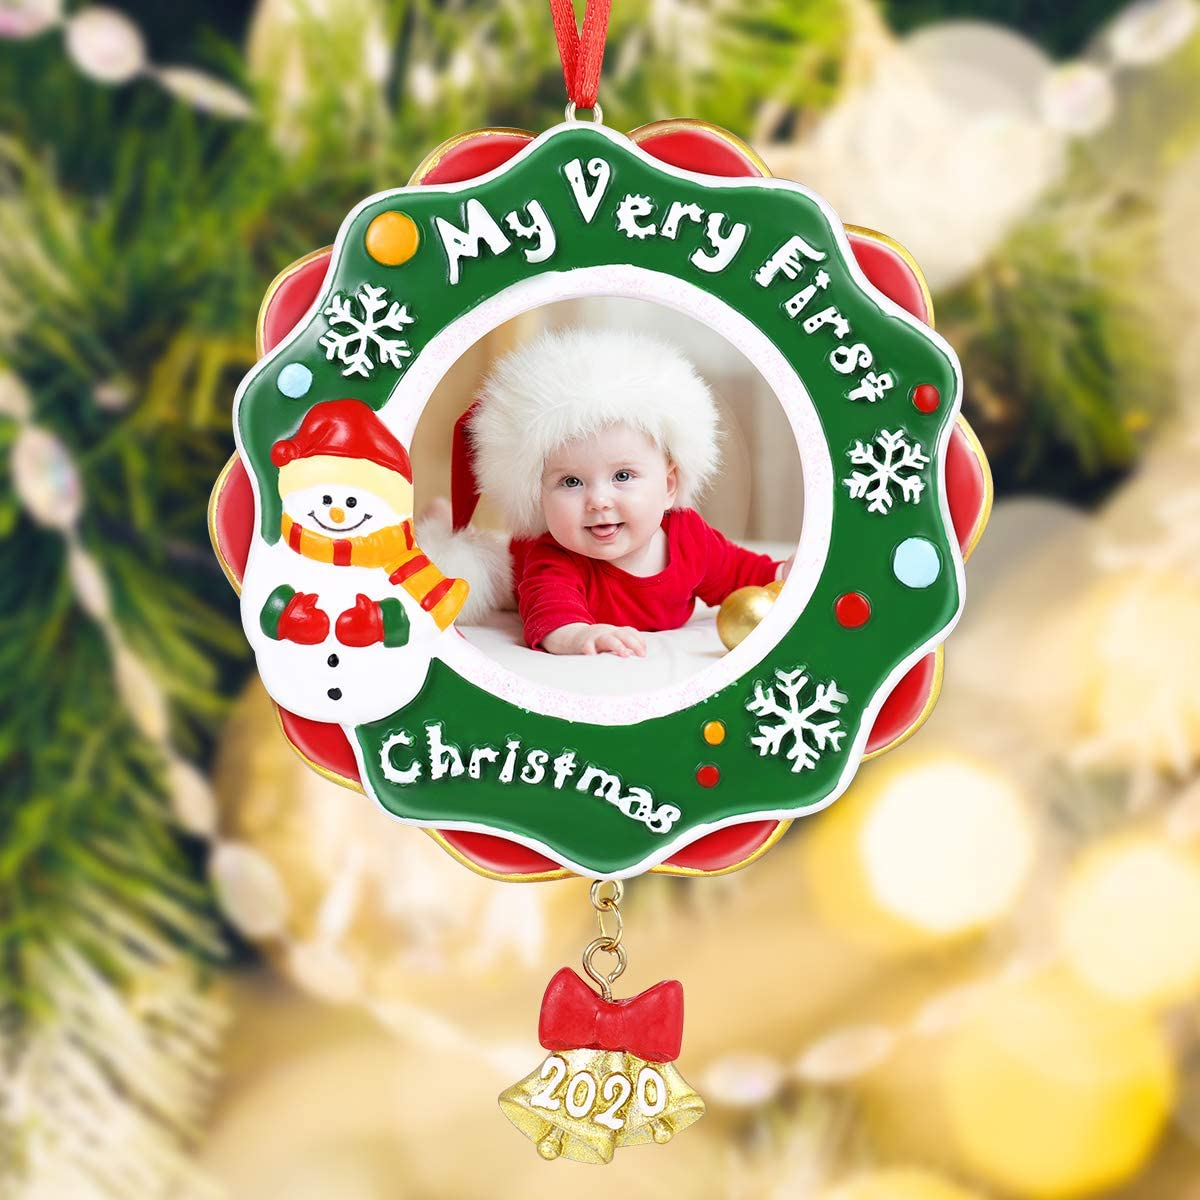 Christmas Frame Photo, Christmas Ornament Gifts 2020 My Very First Christmas Picture Photo Frame Plaque